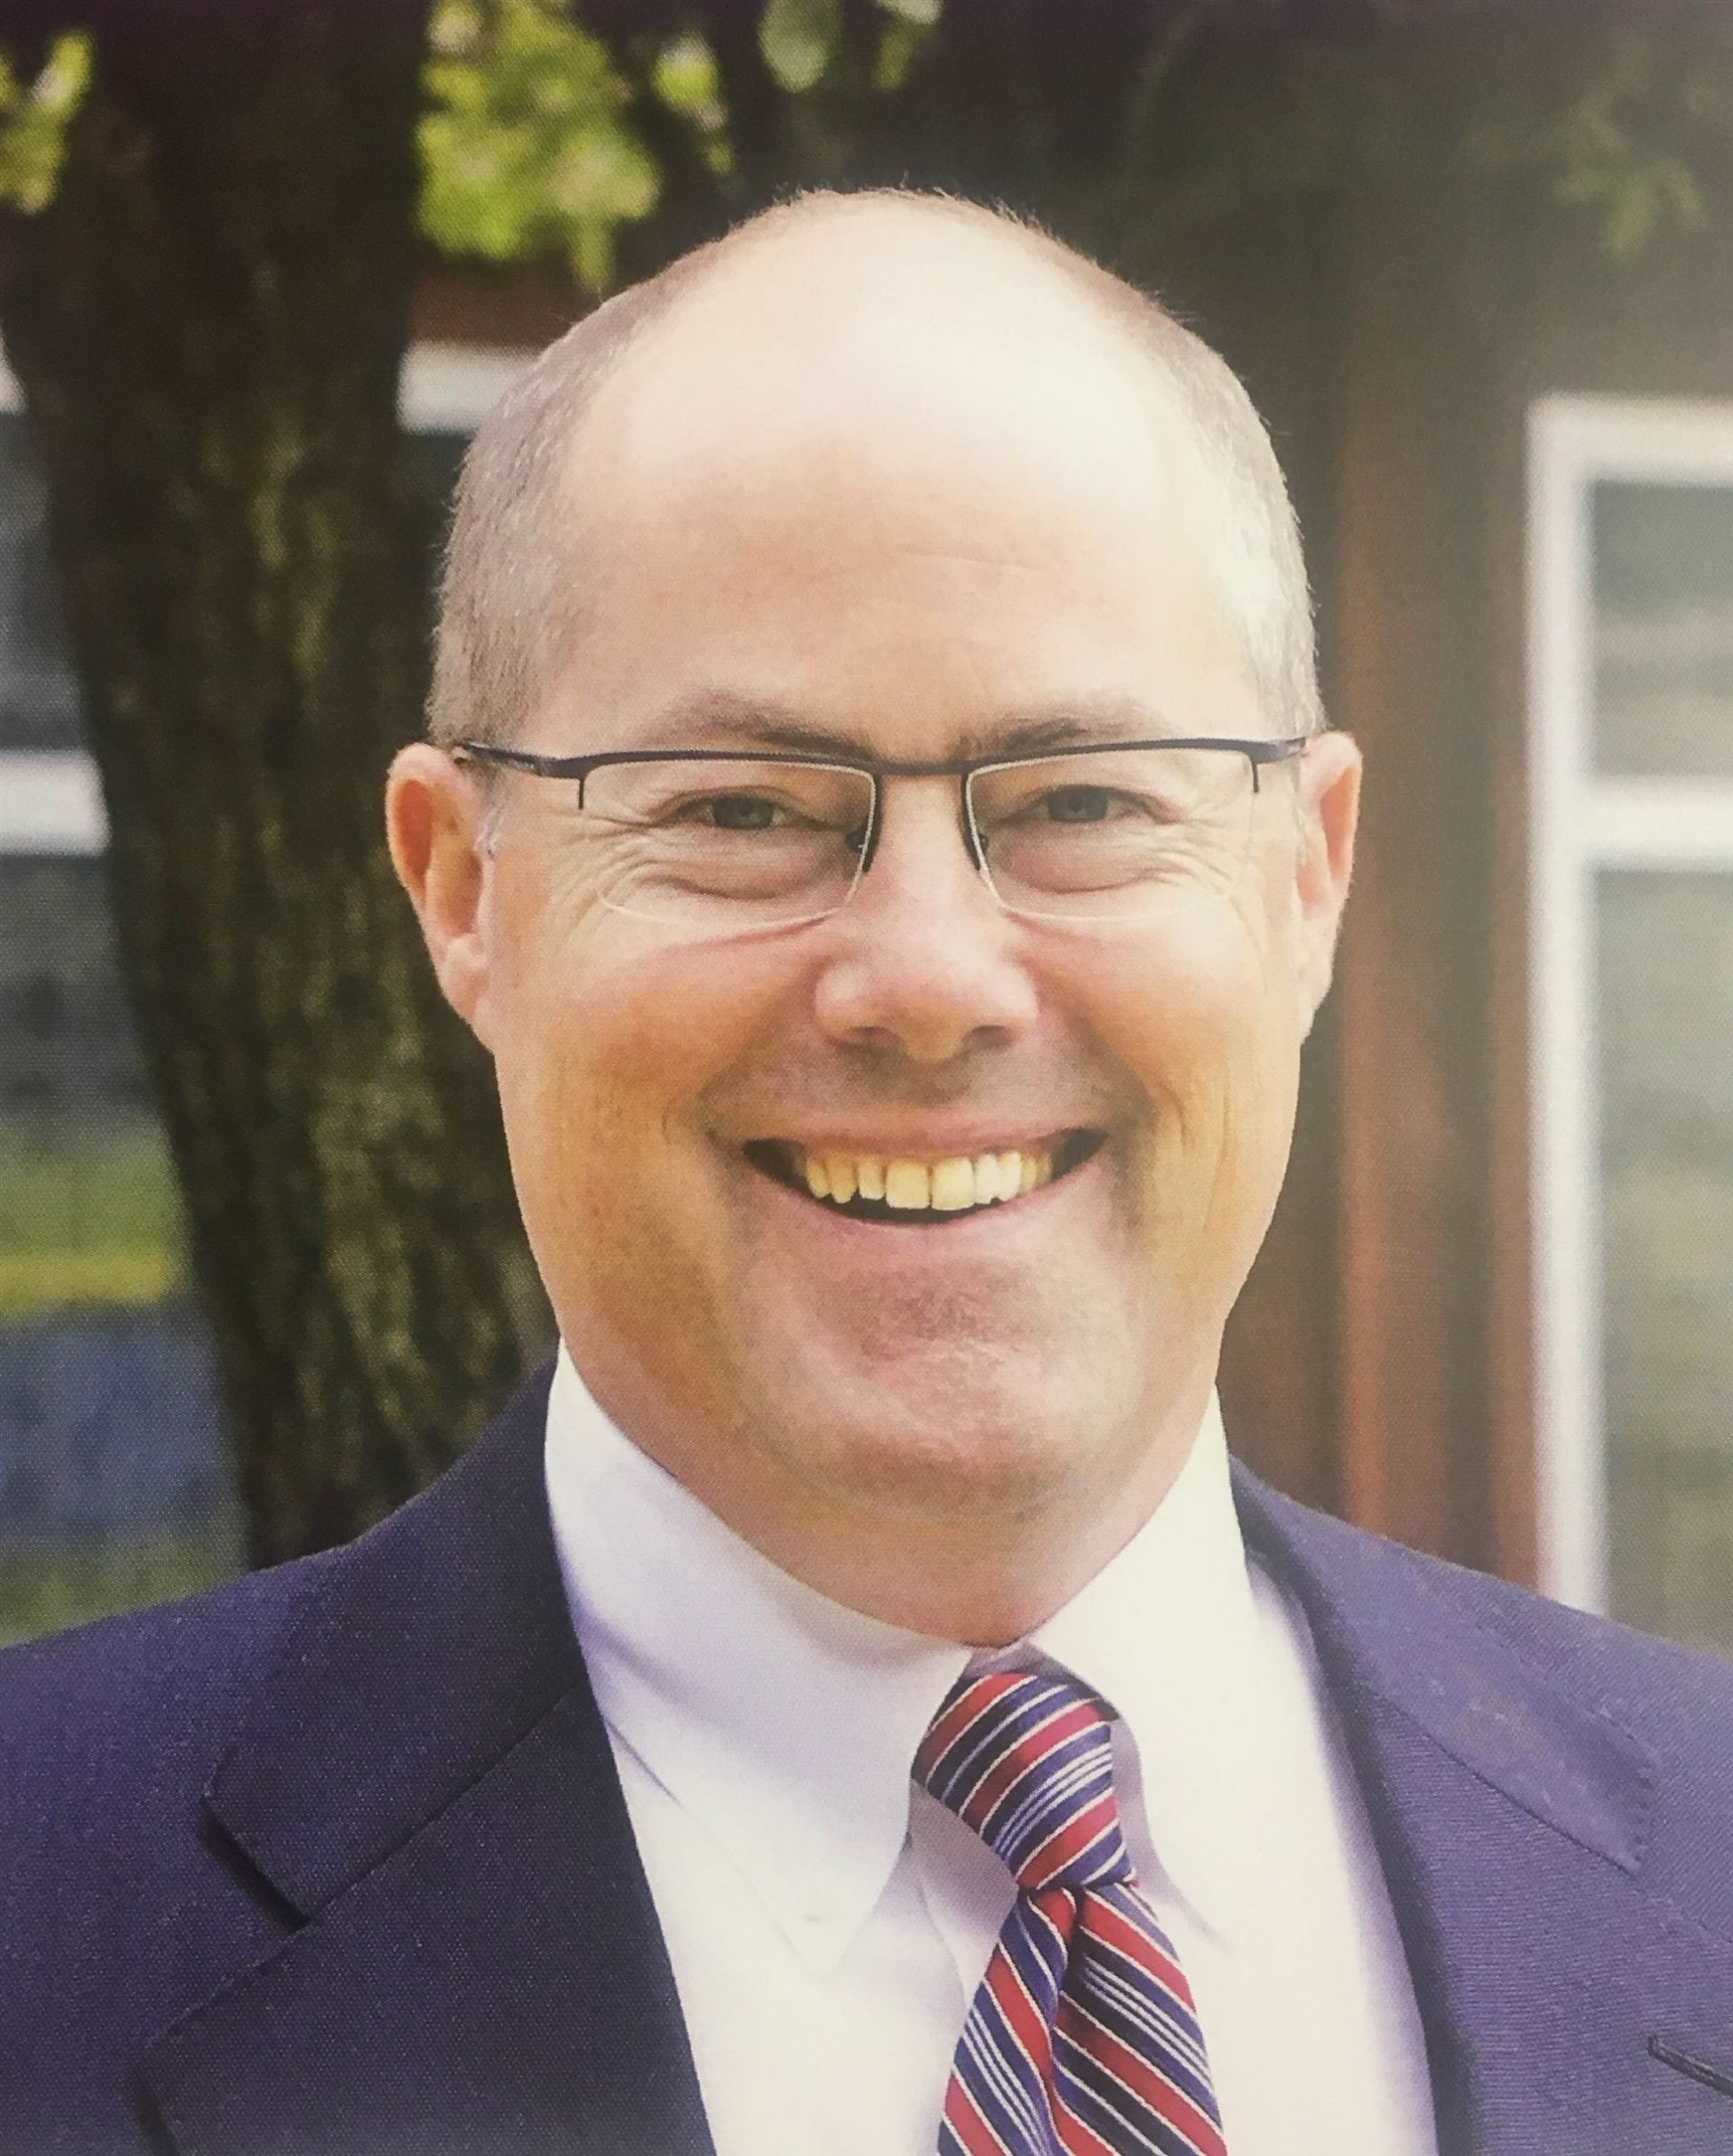 Sean Murphy, St. Andrew's current Head of School